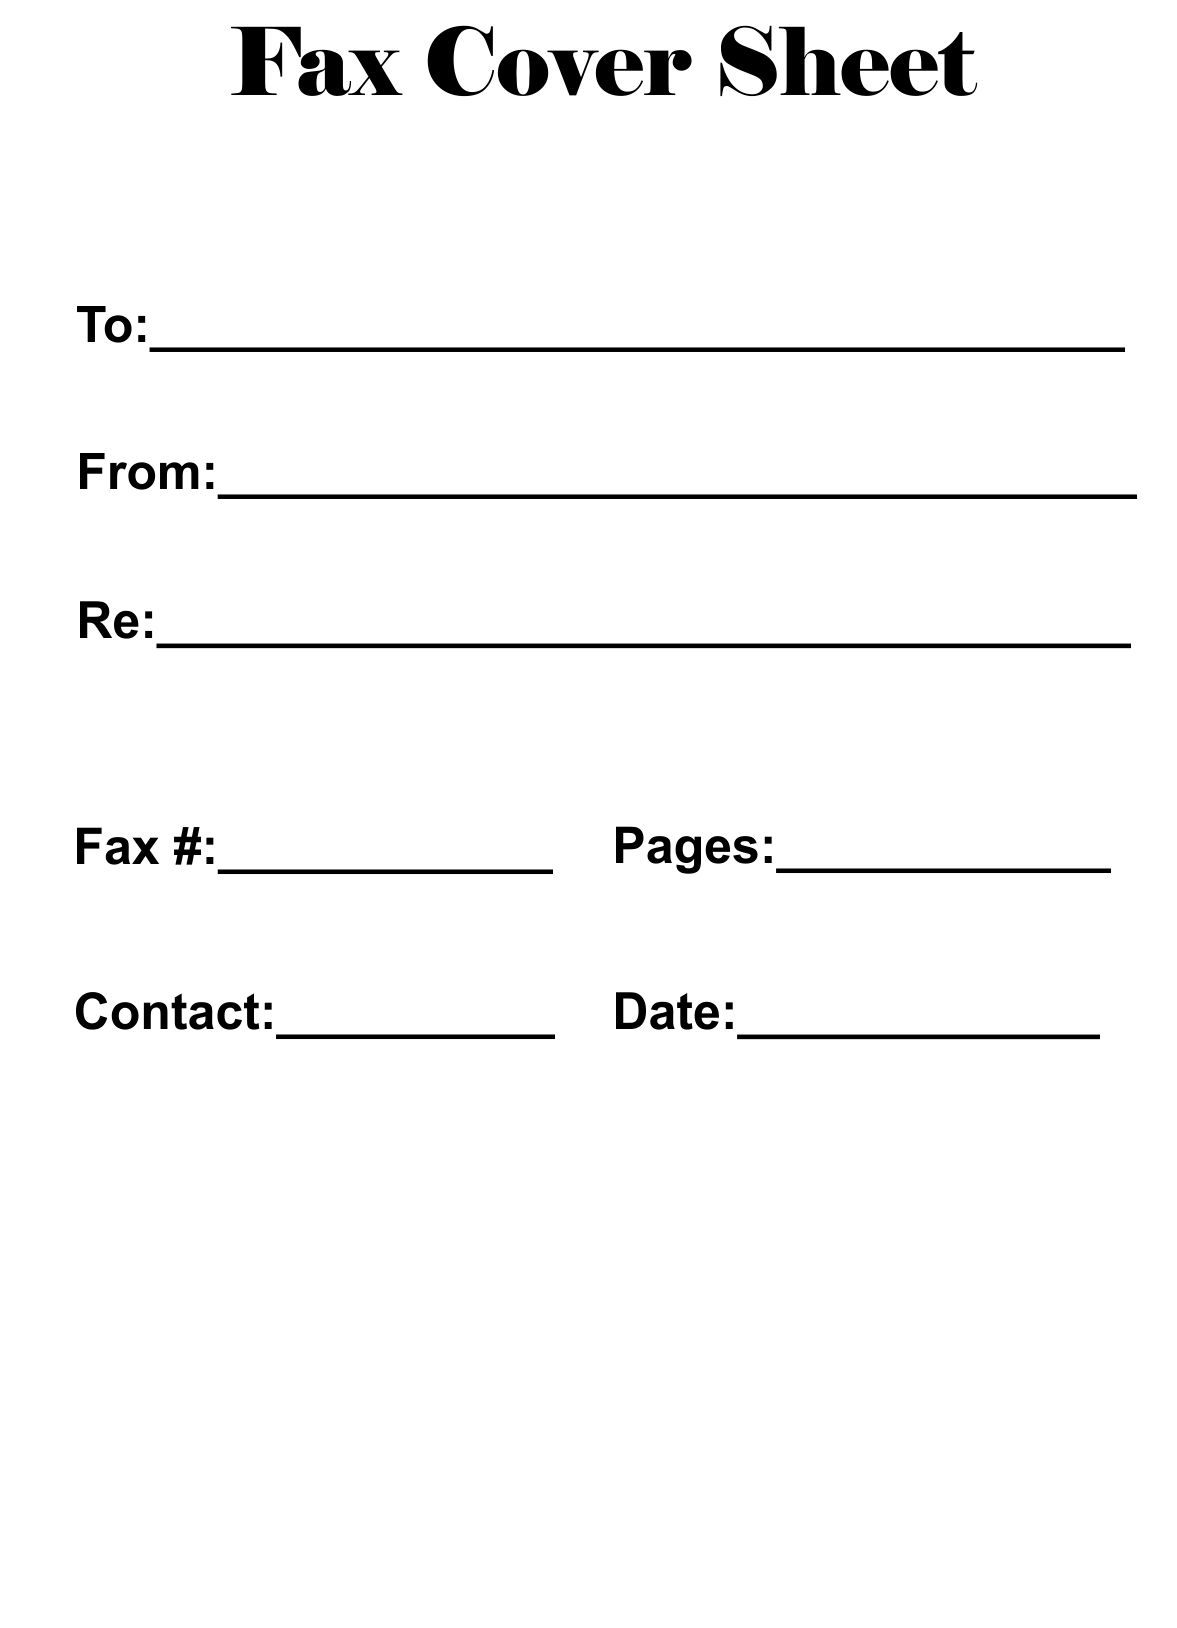 Blank Fax Cover Sheet PDF